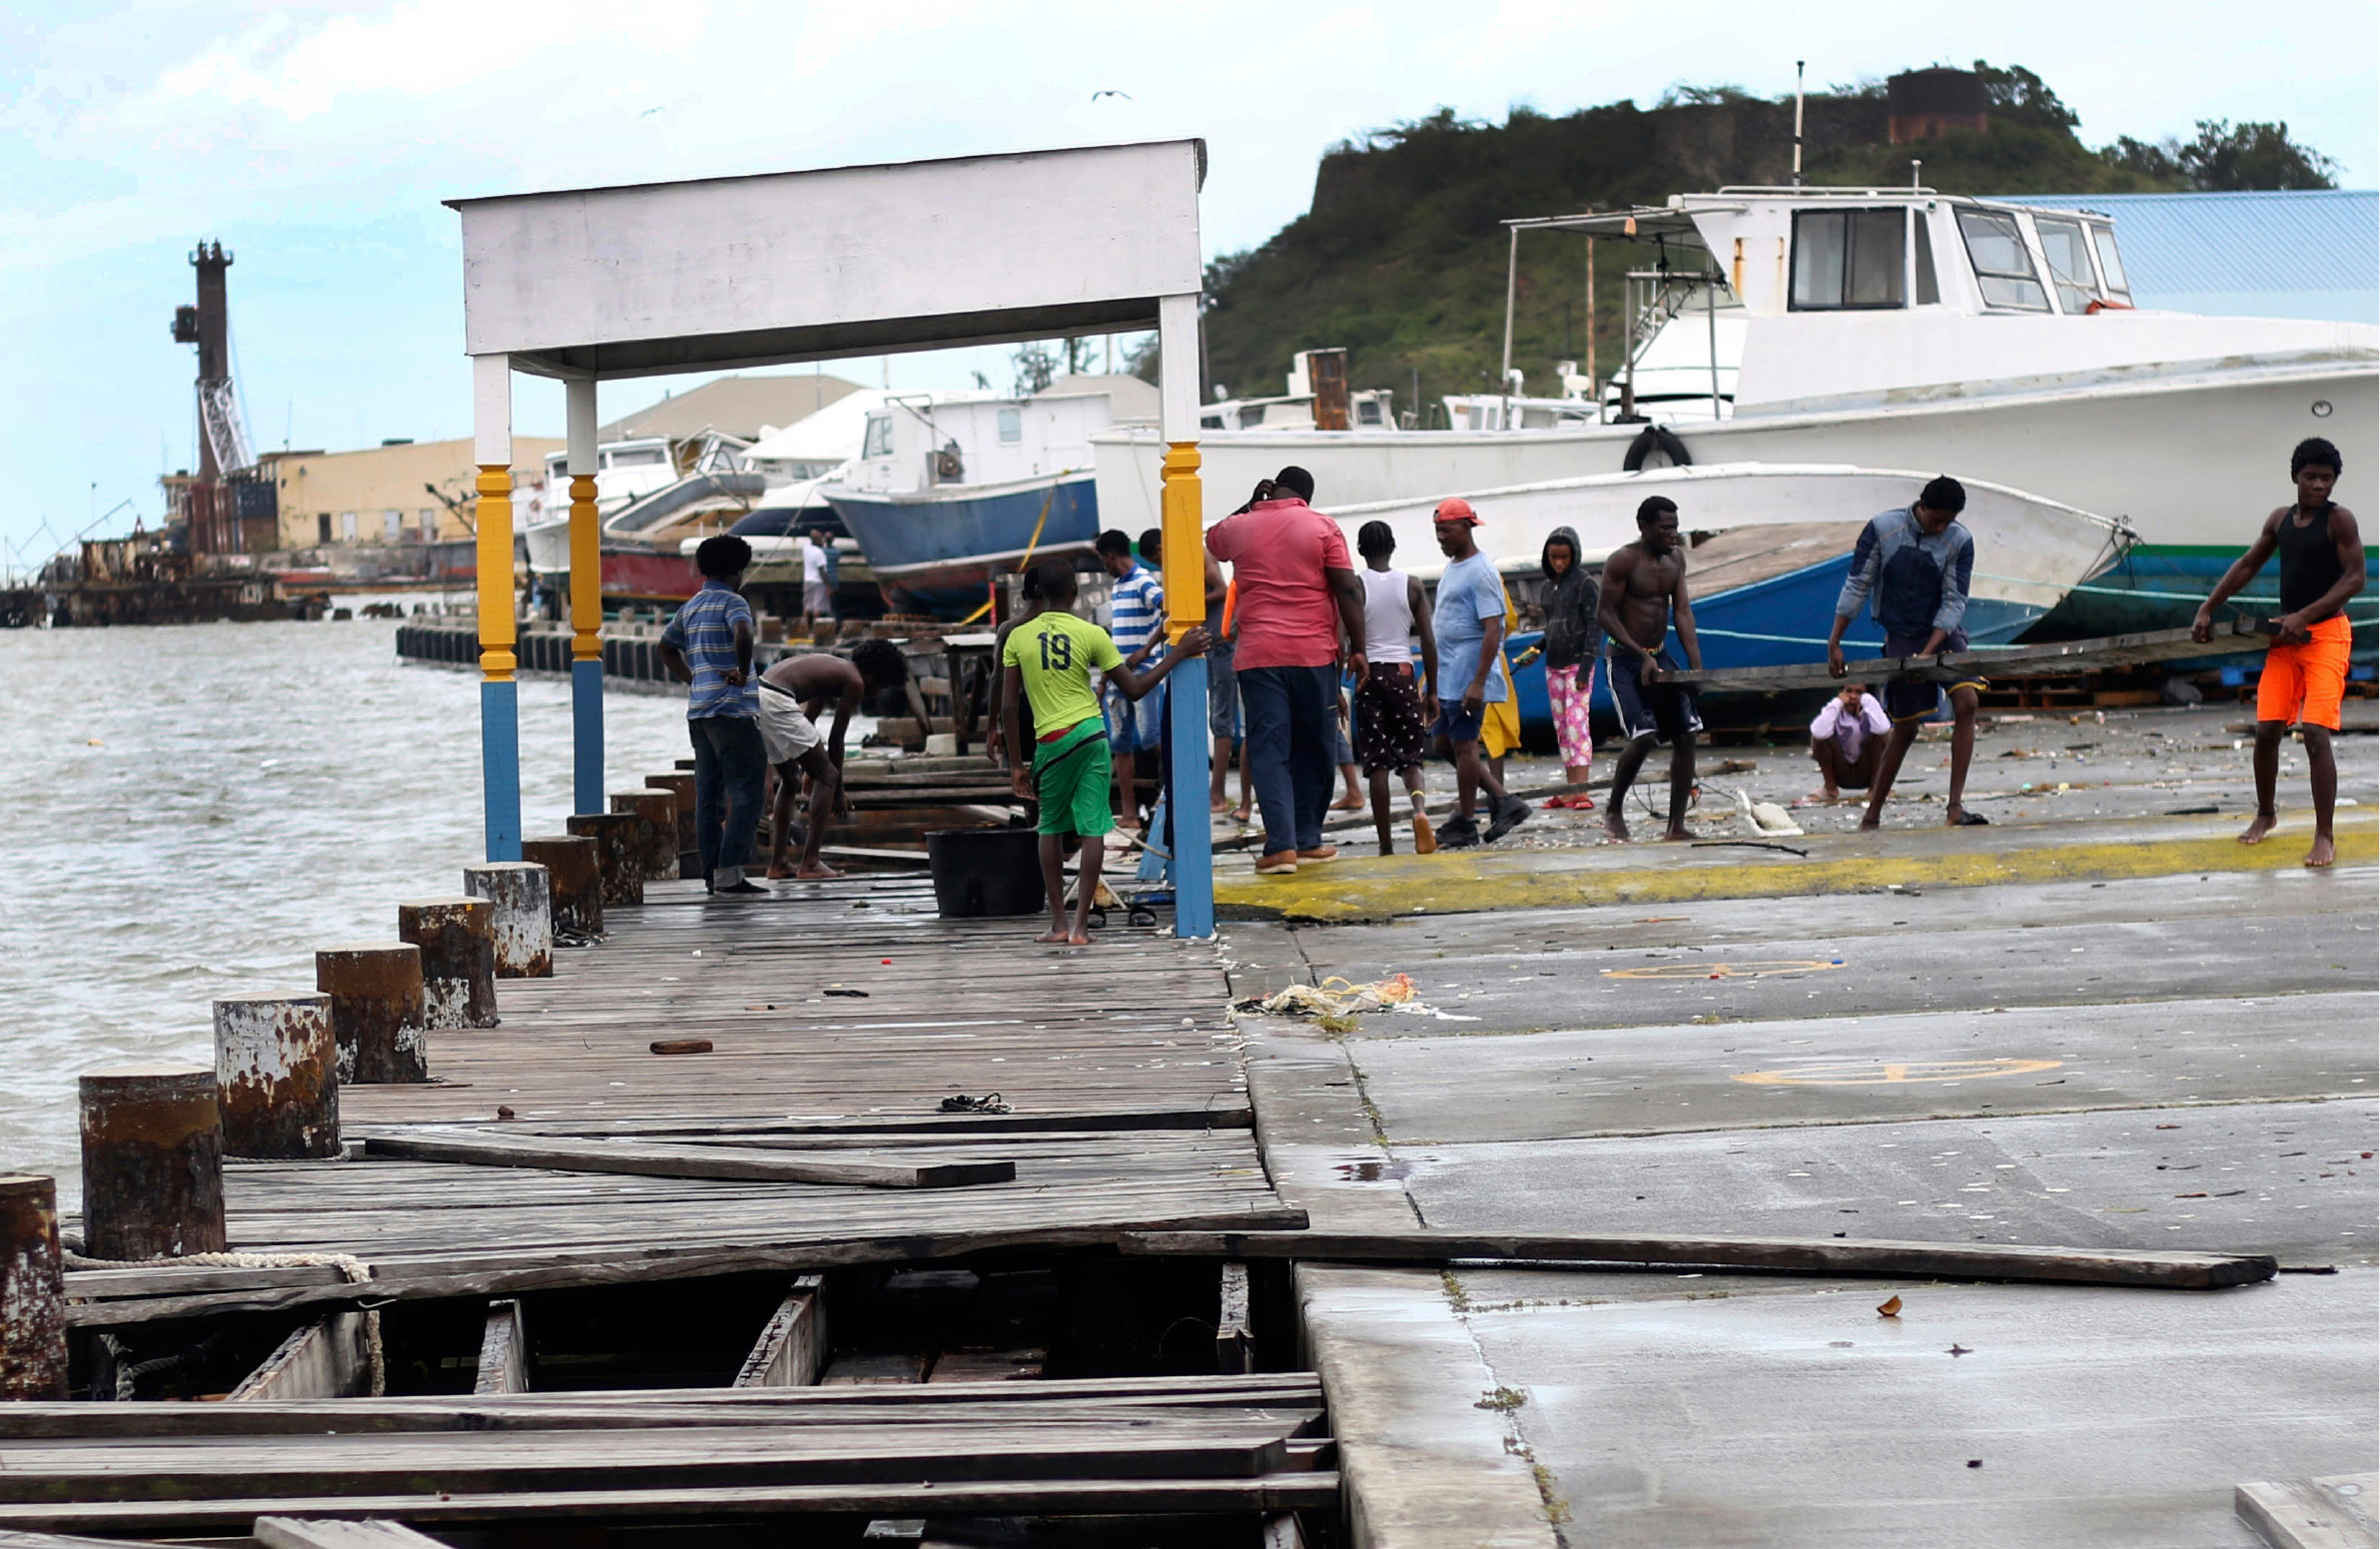 People recover broken parts of the dock after the passing of Hurricane Irma, in St. John